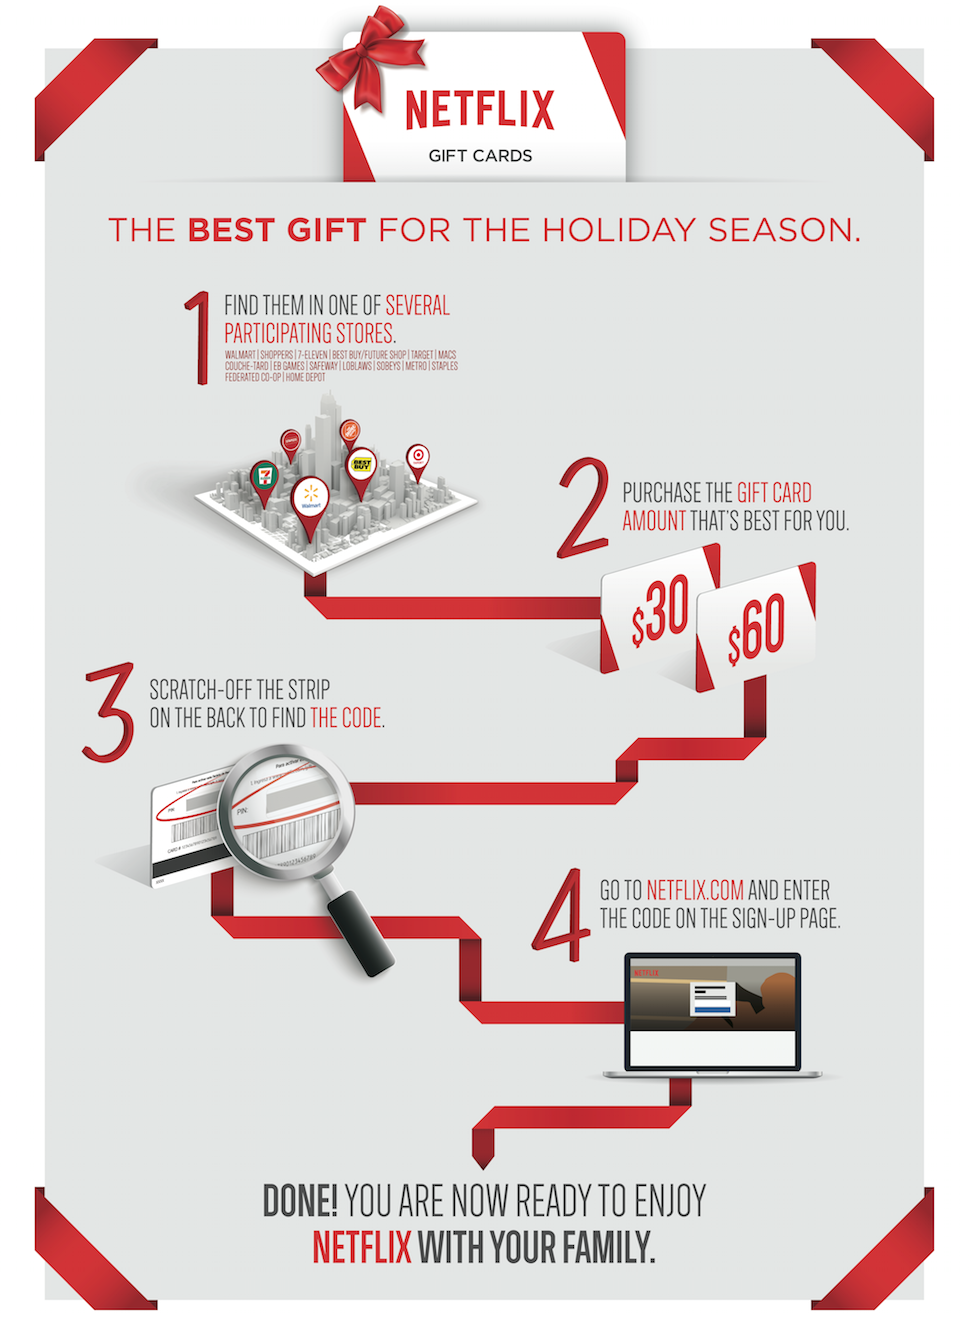 Contest! Netflix Retail Gift Cards for the Holiday season